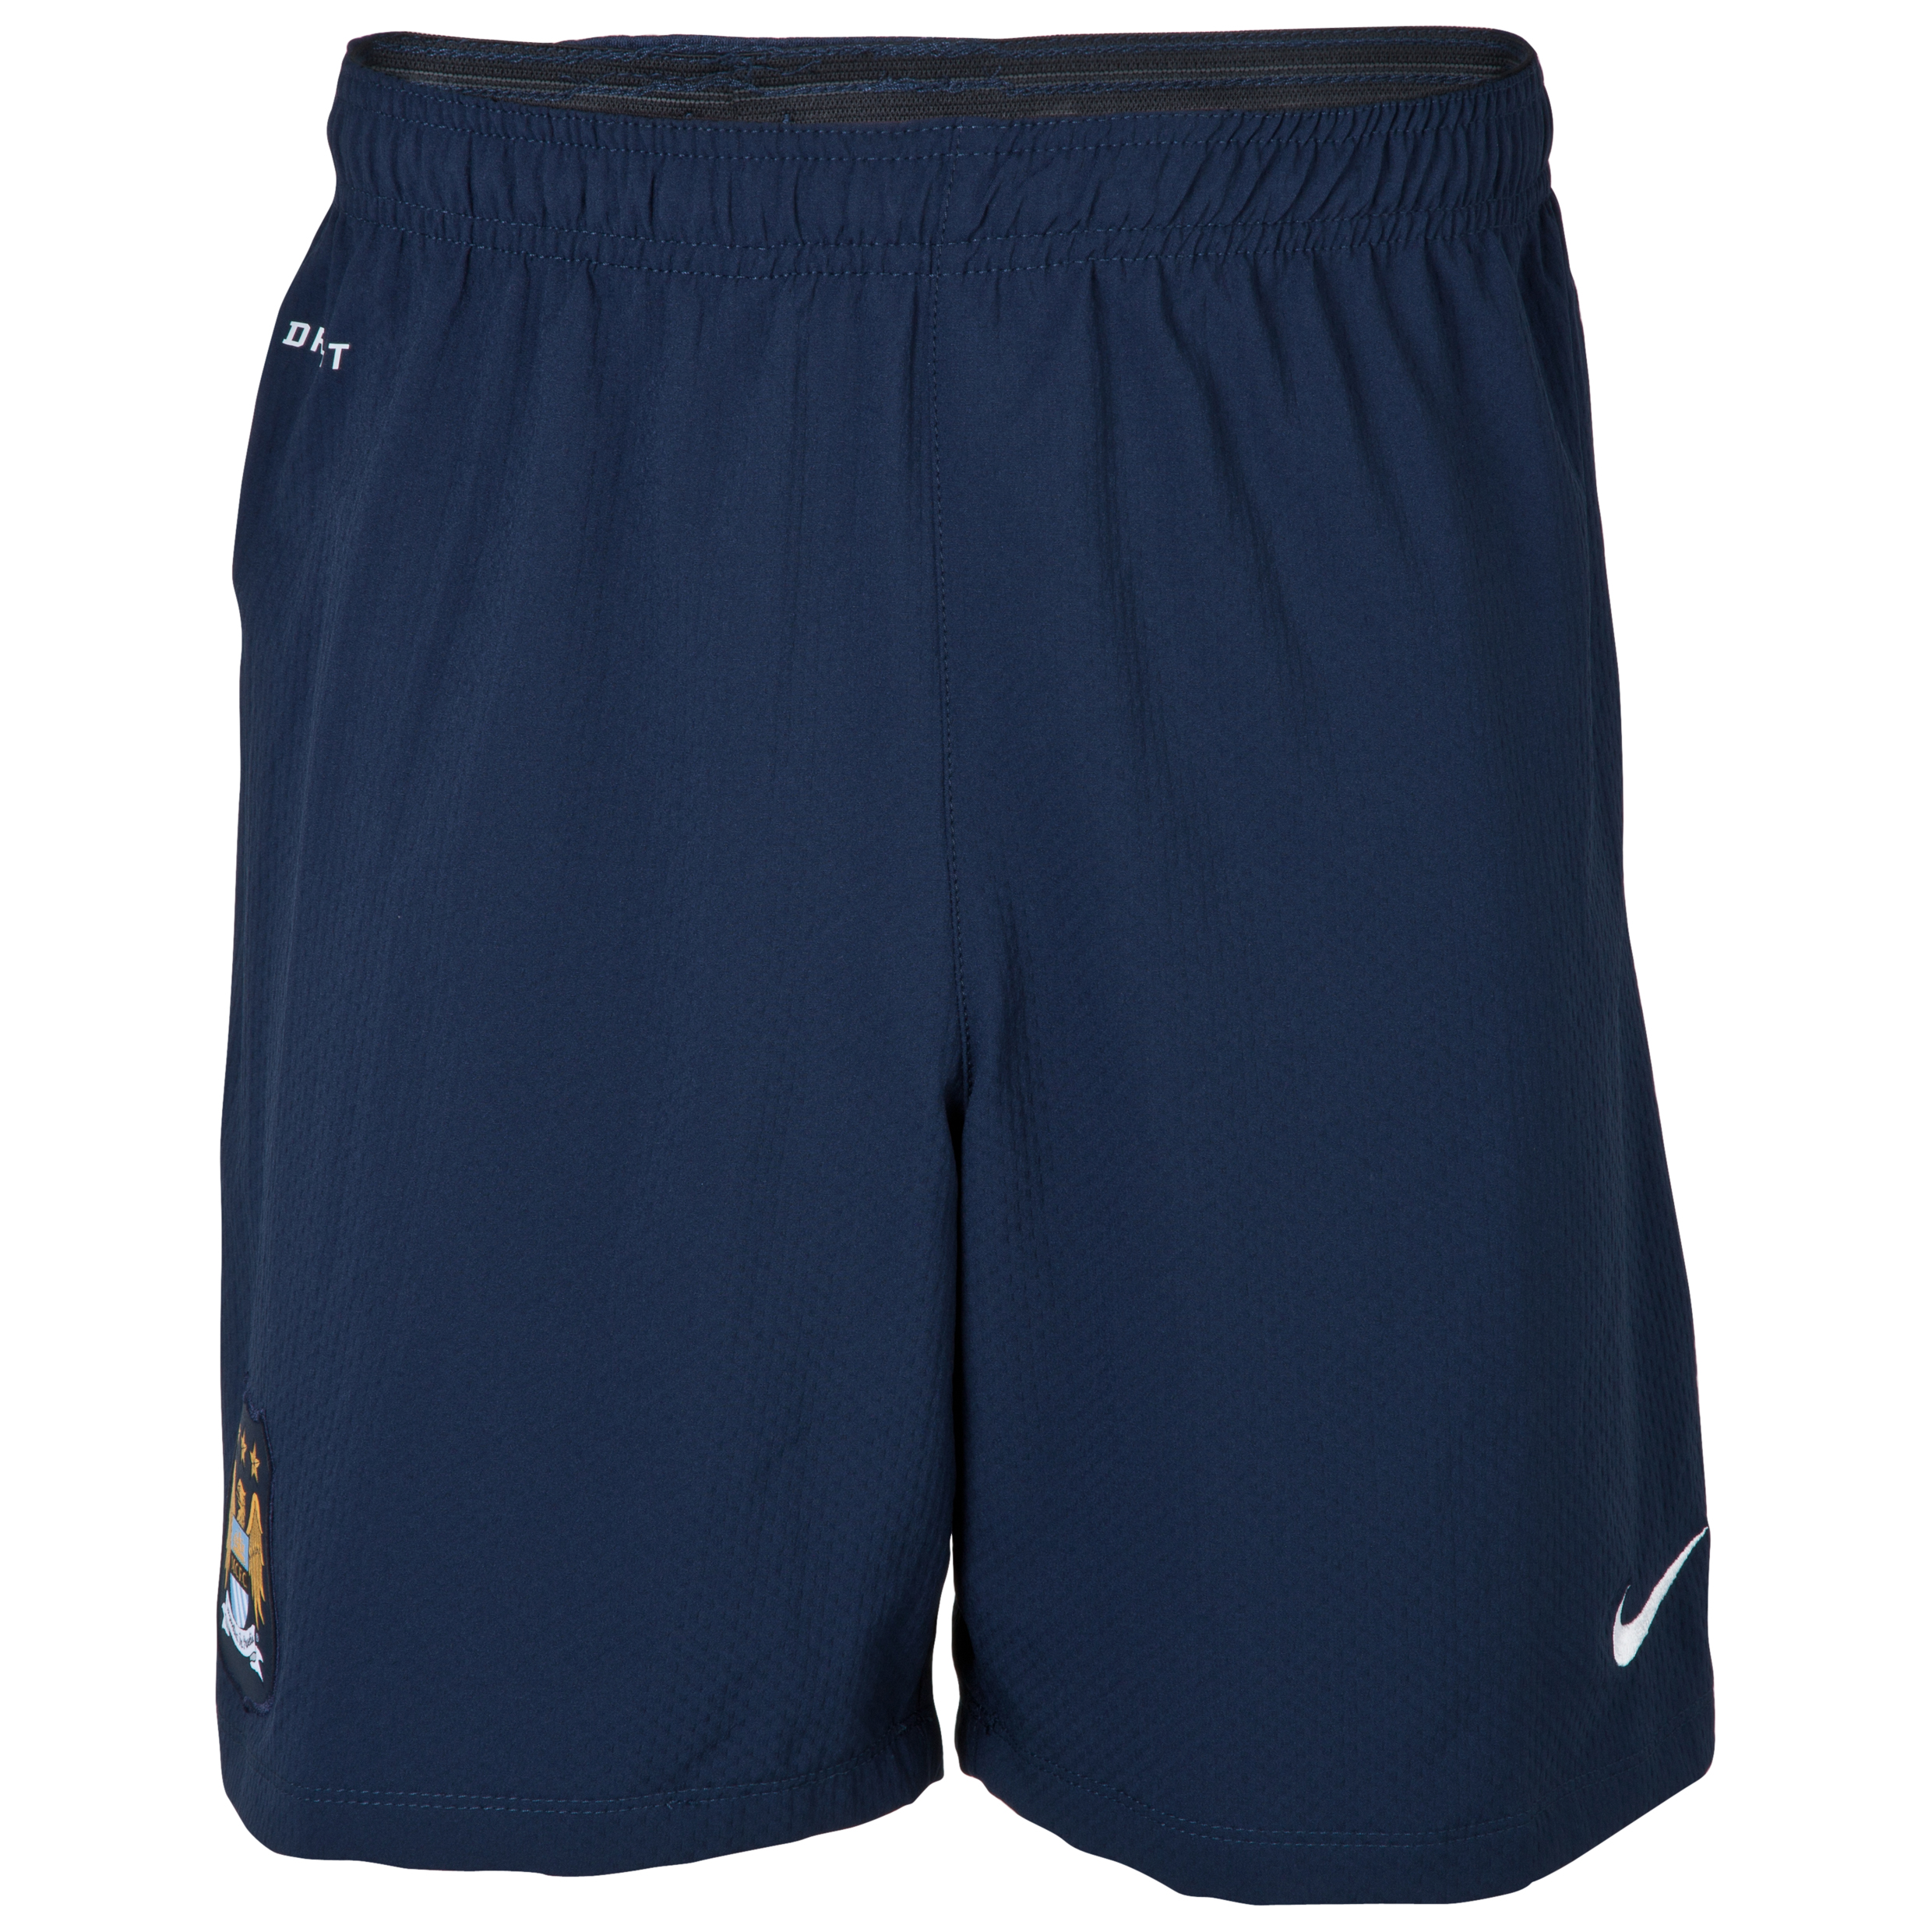 Manchester City Woven Short - Mens Navy